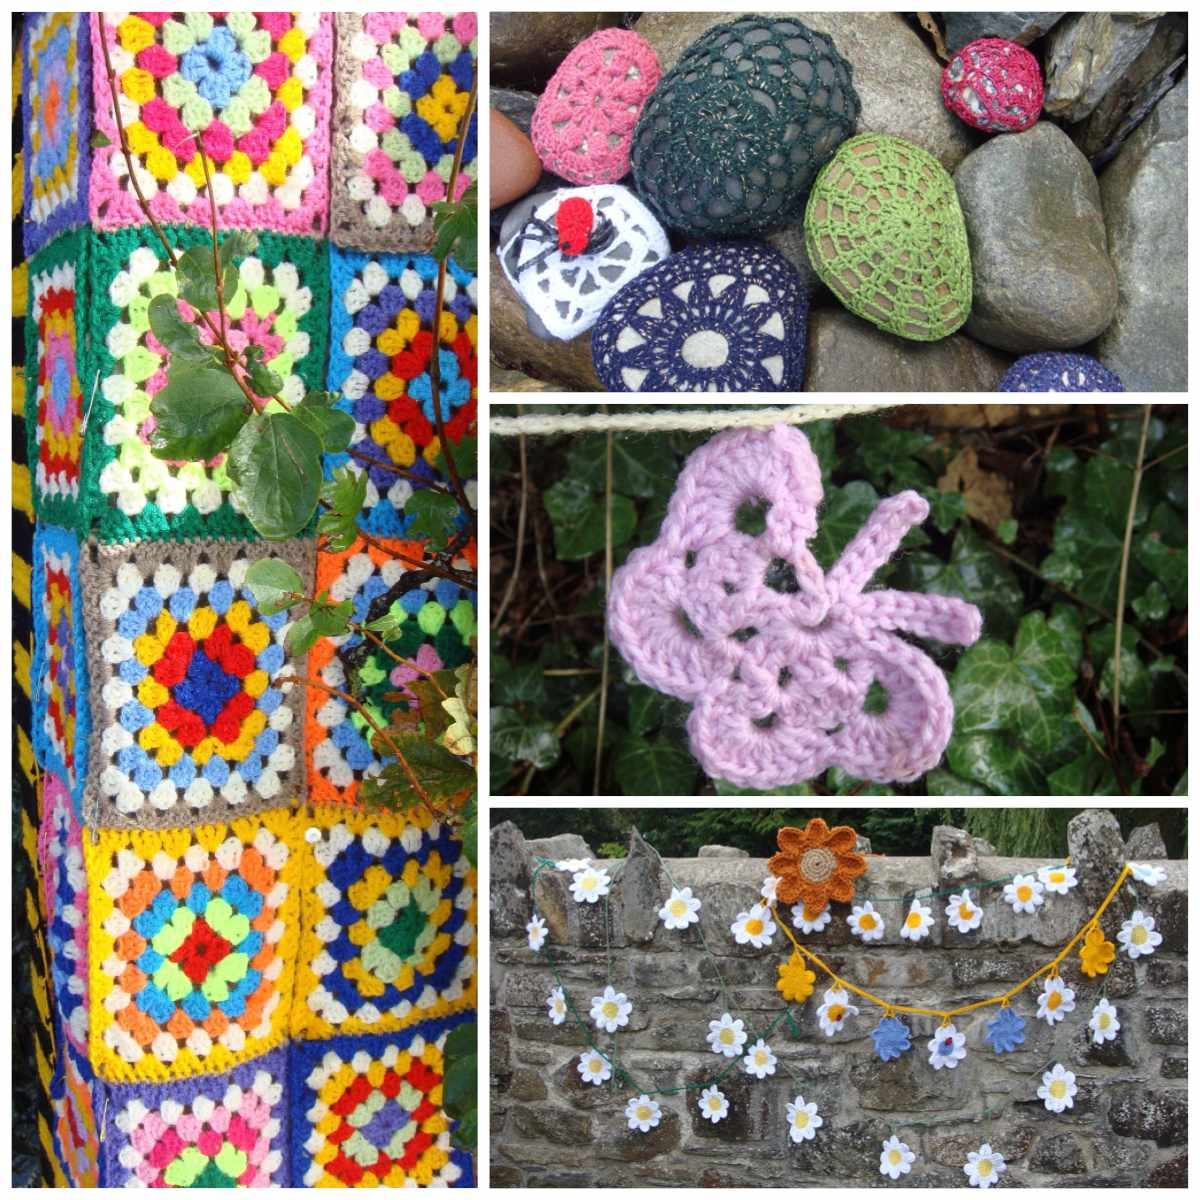 Community Crochet Collage